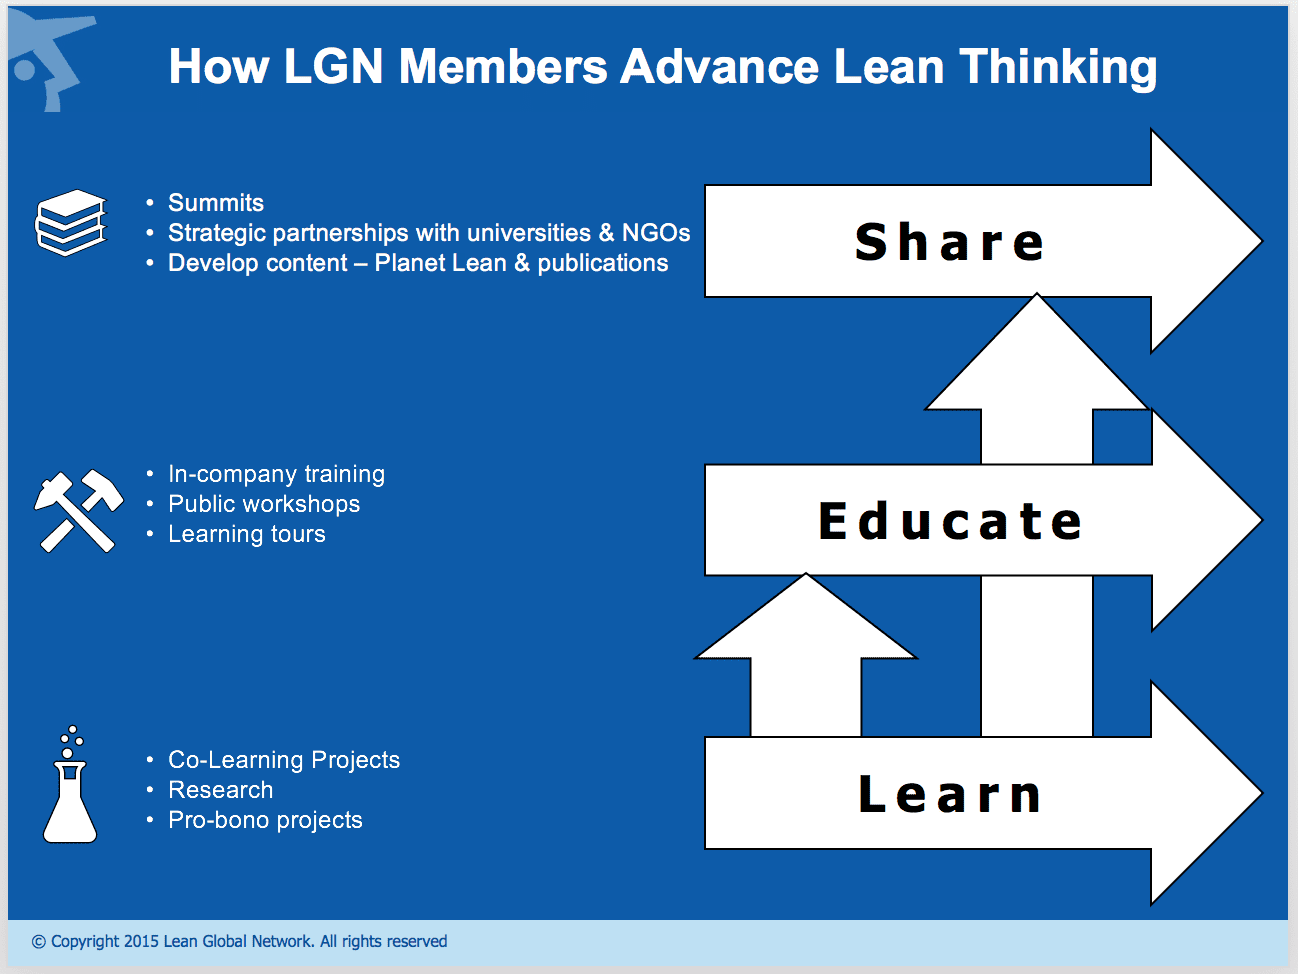 How Lean Global Network advances lean thinking around the world